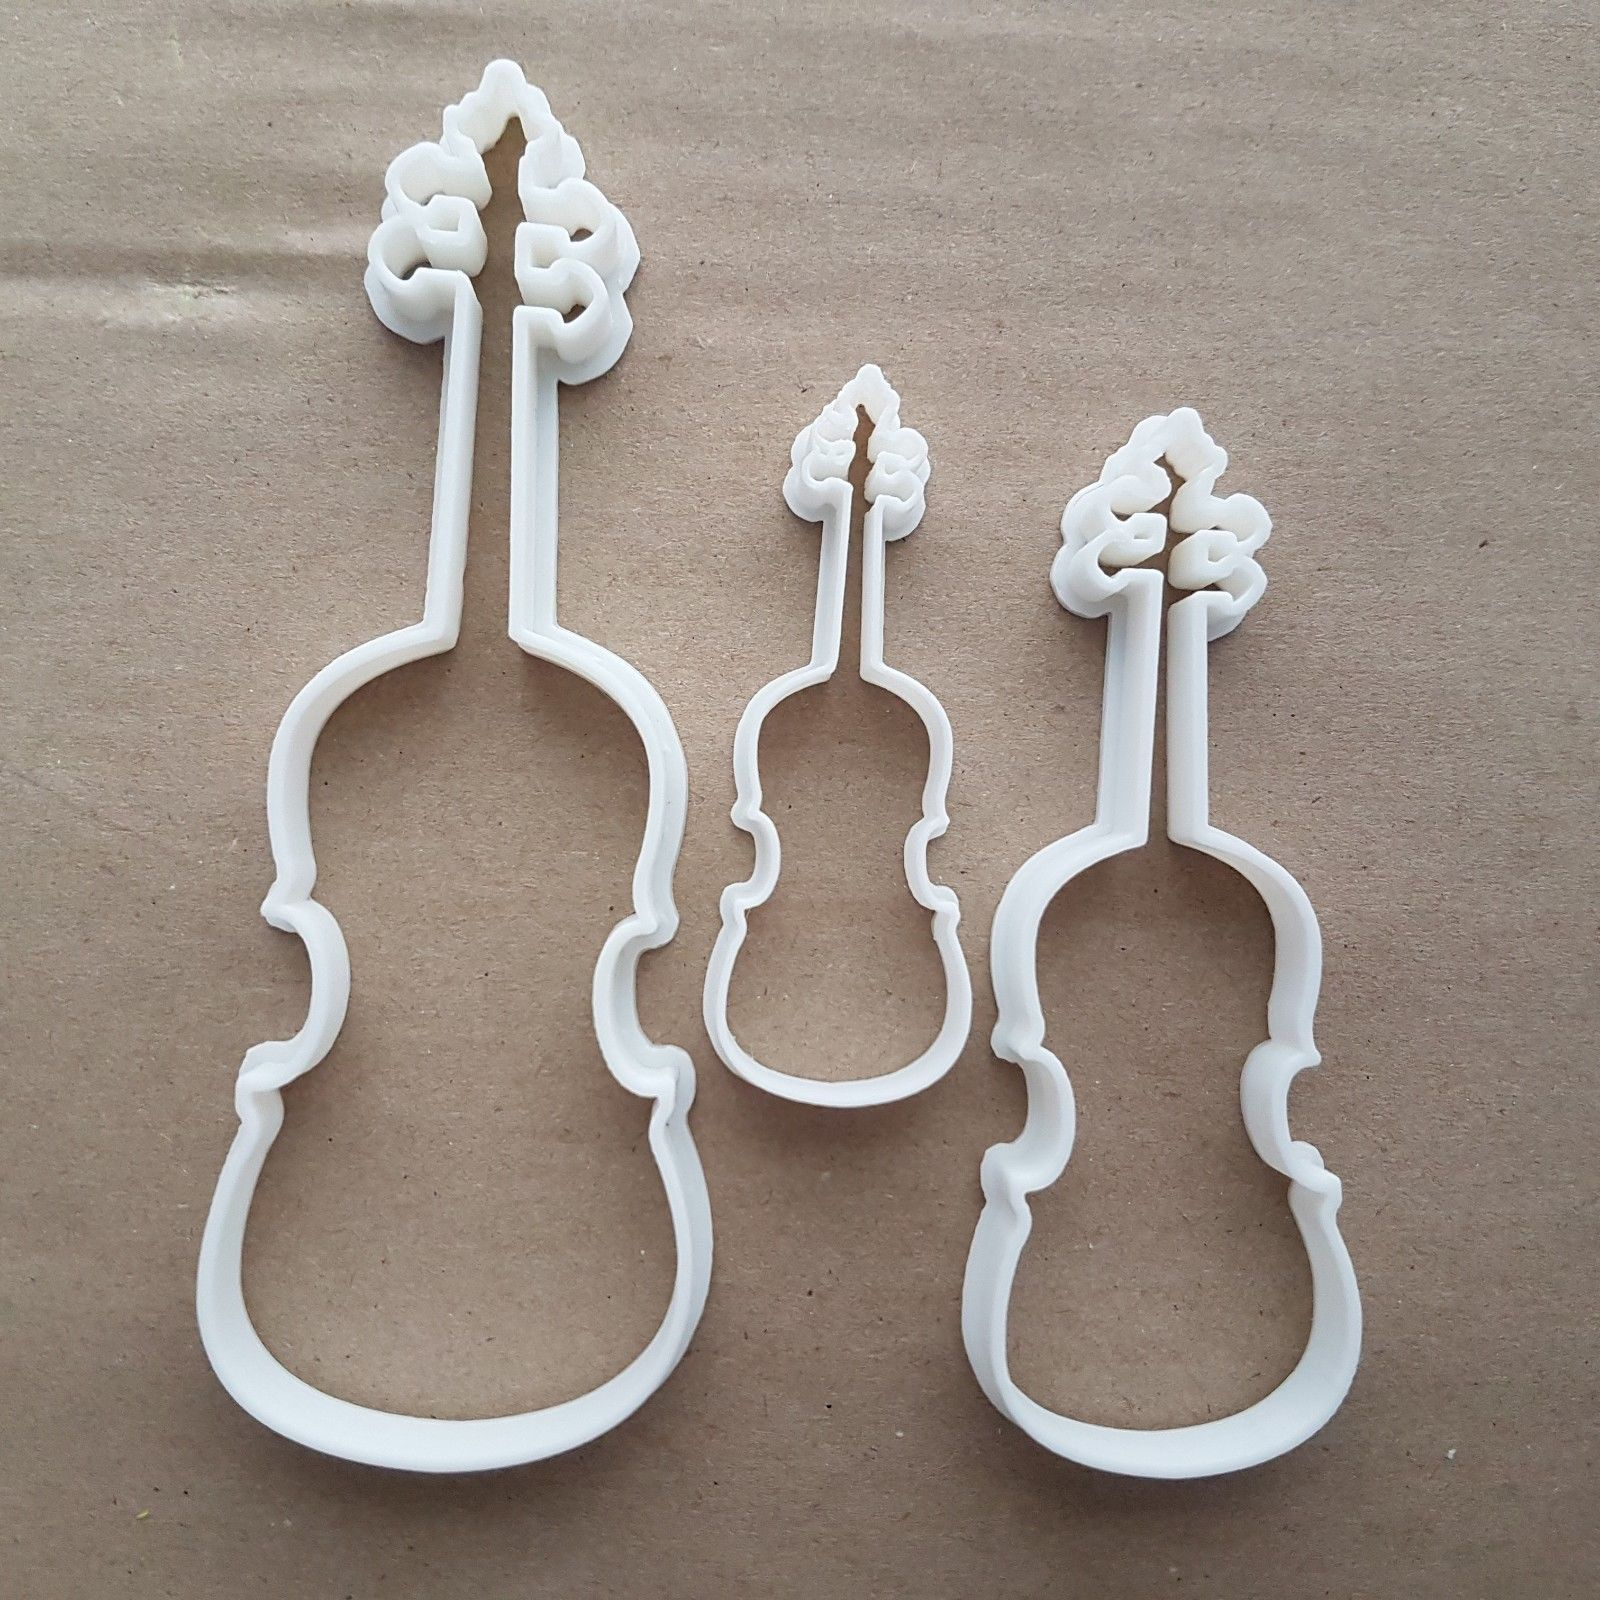 Guitar Bass Acoustic Electric Shape Cookie Cutter Music Biscuit Pastry Stencil